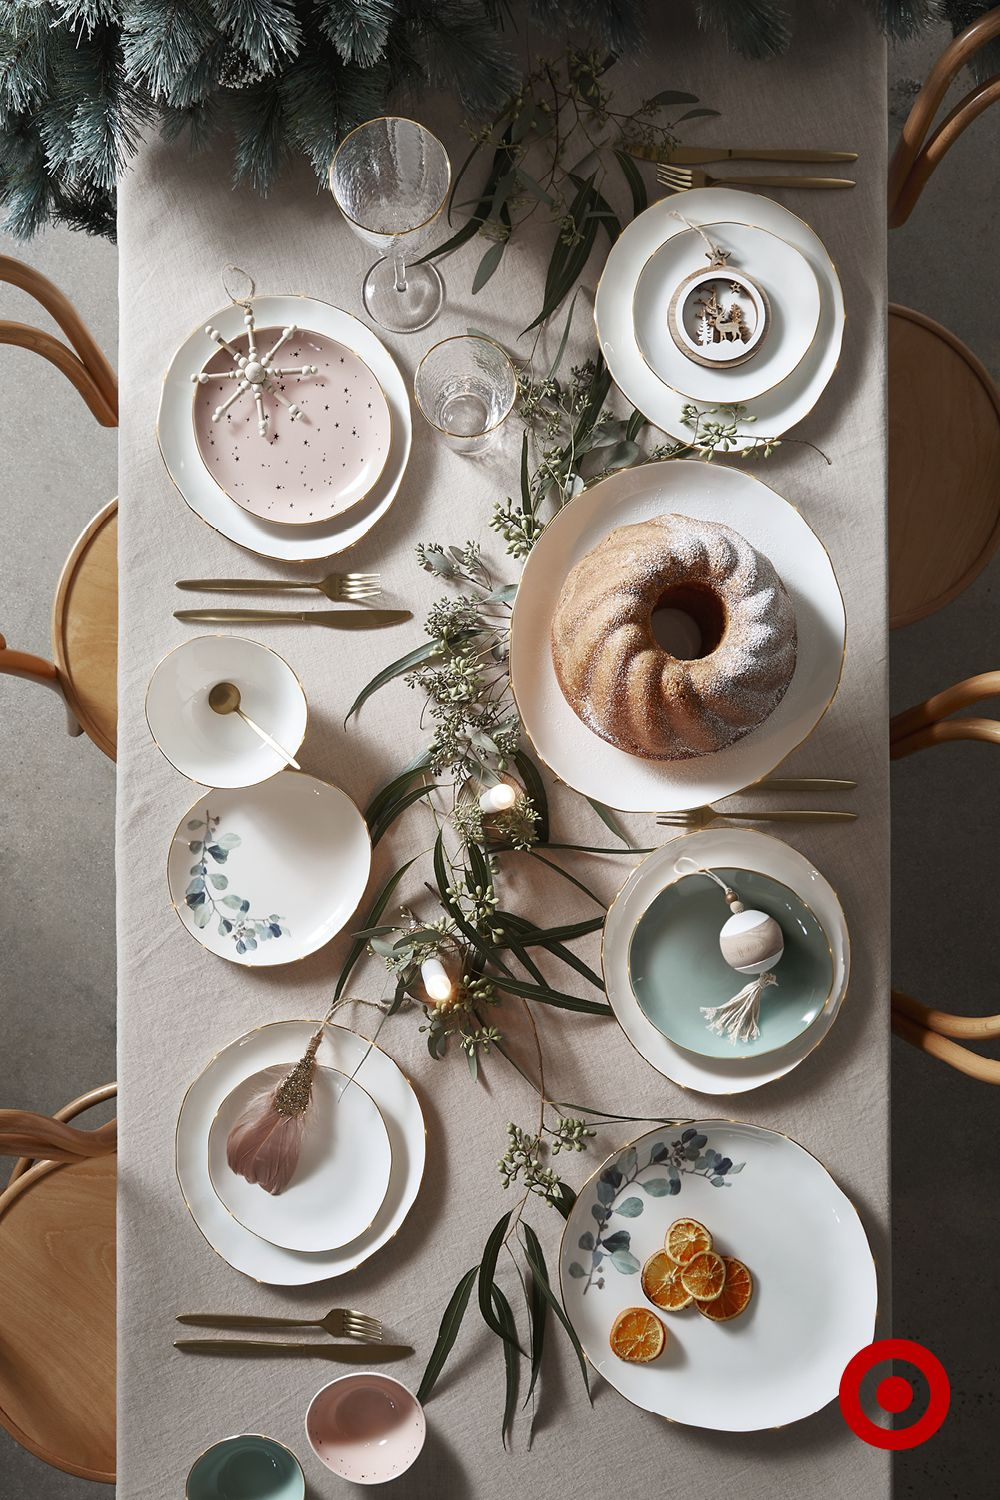 Gold Rim Tableware Adds A Glam Festive Touch To The Dinner Table Christmas Decorations Table Settings Christmas Table Decorations Classy Christmas